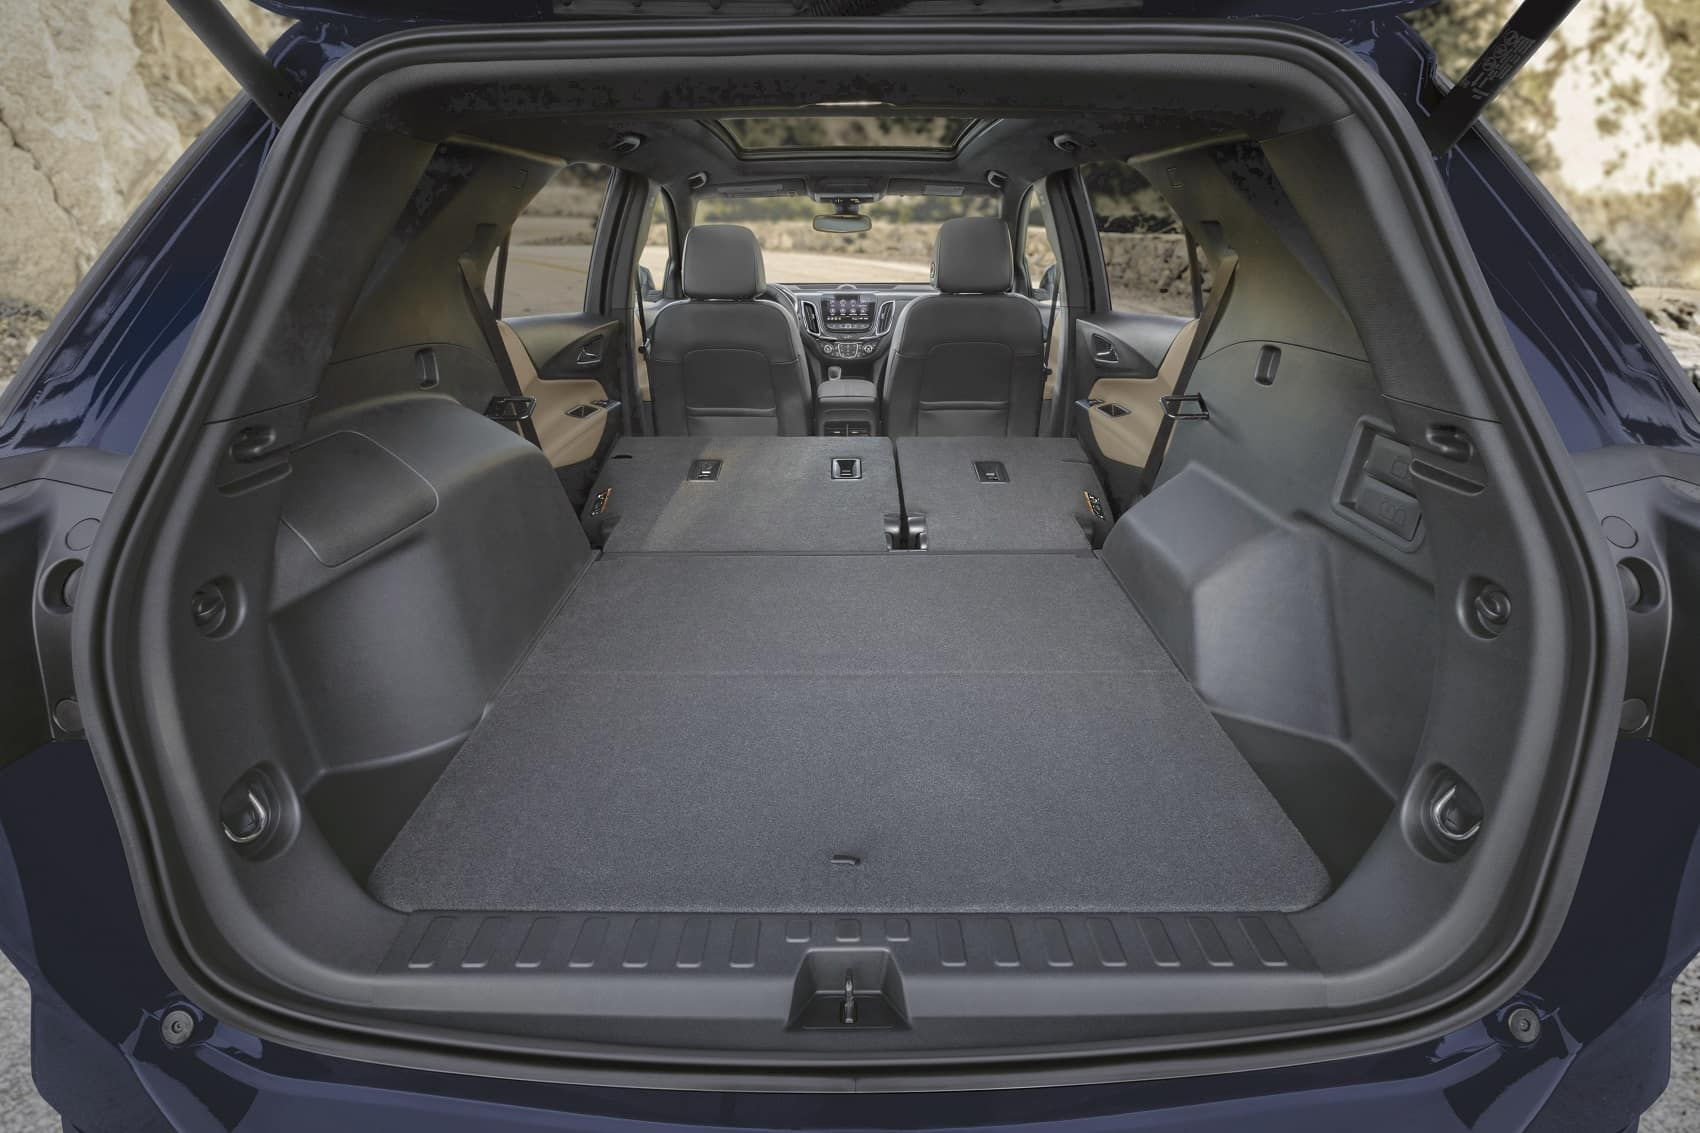 2022 Chevy Equinox cabin with rear seats folded